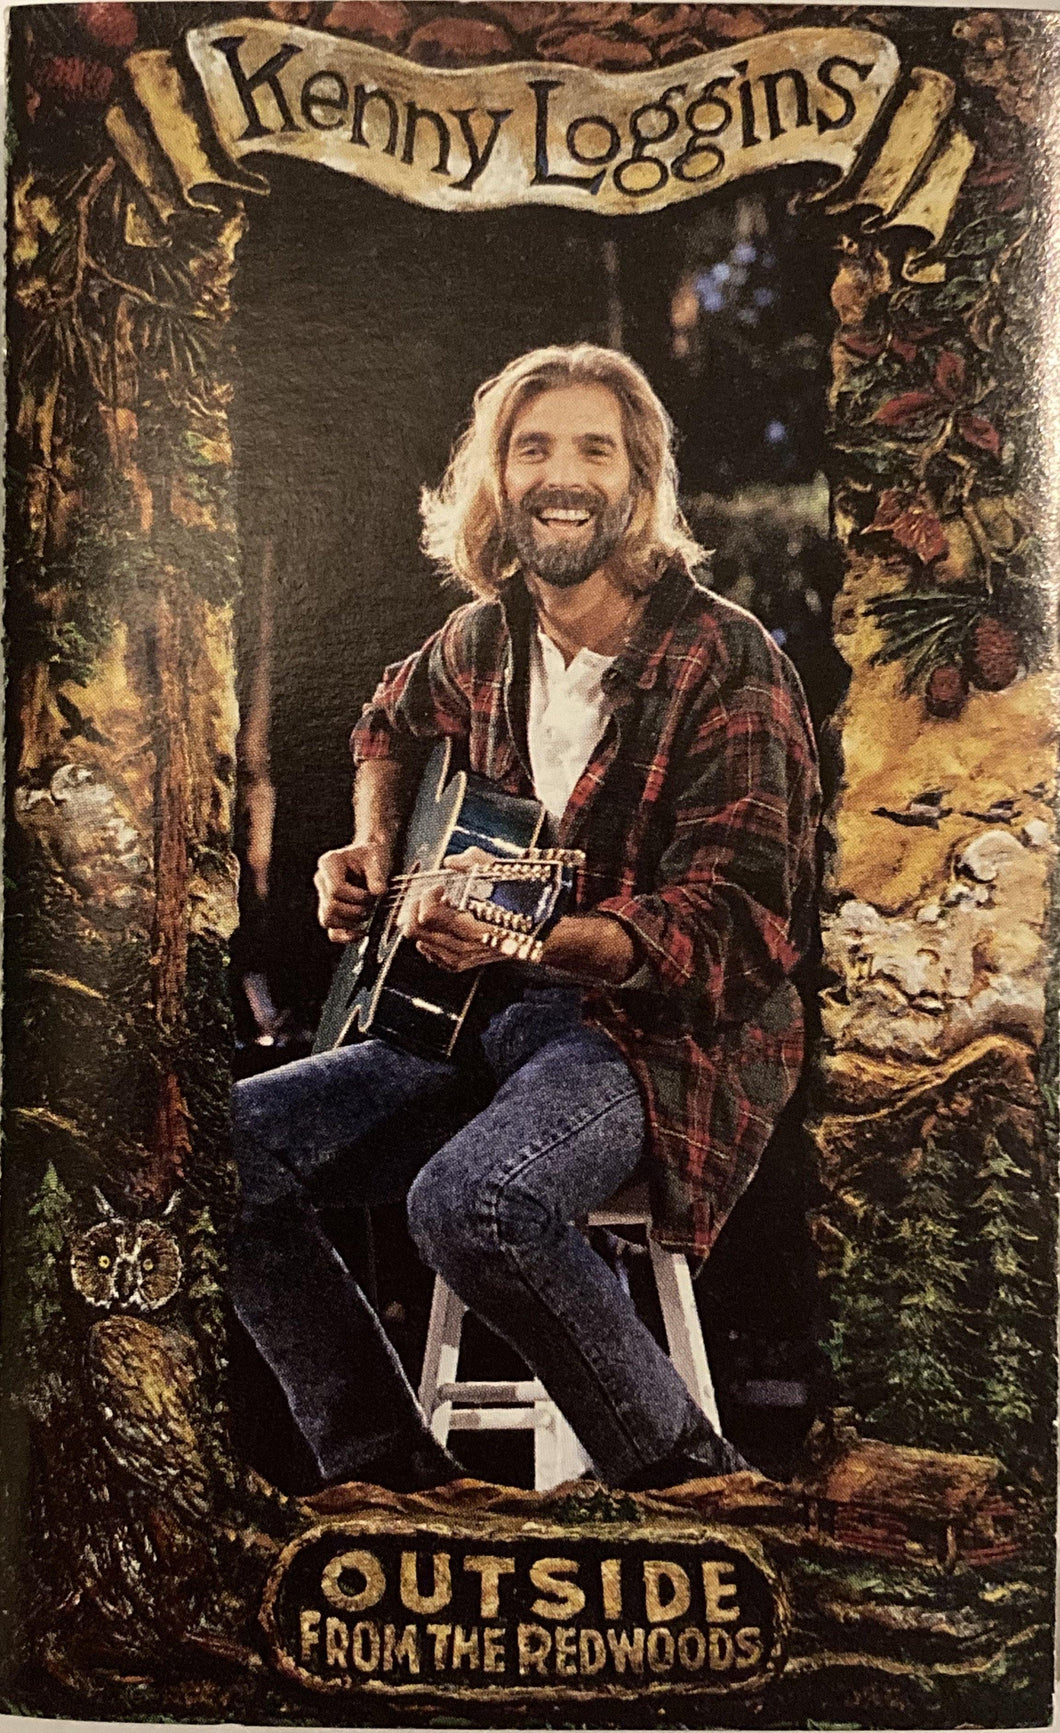 Kenny Loggins - Outside From The Redwoods CASSETTE TAPE VG+ - 3rdfloortapes.com